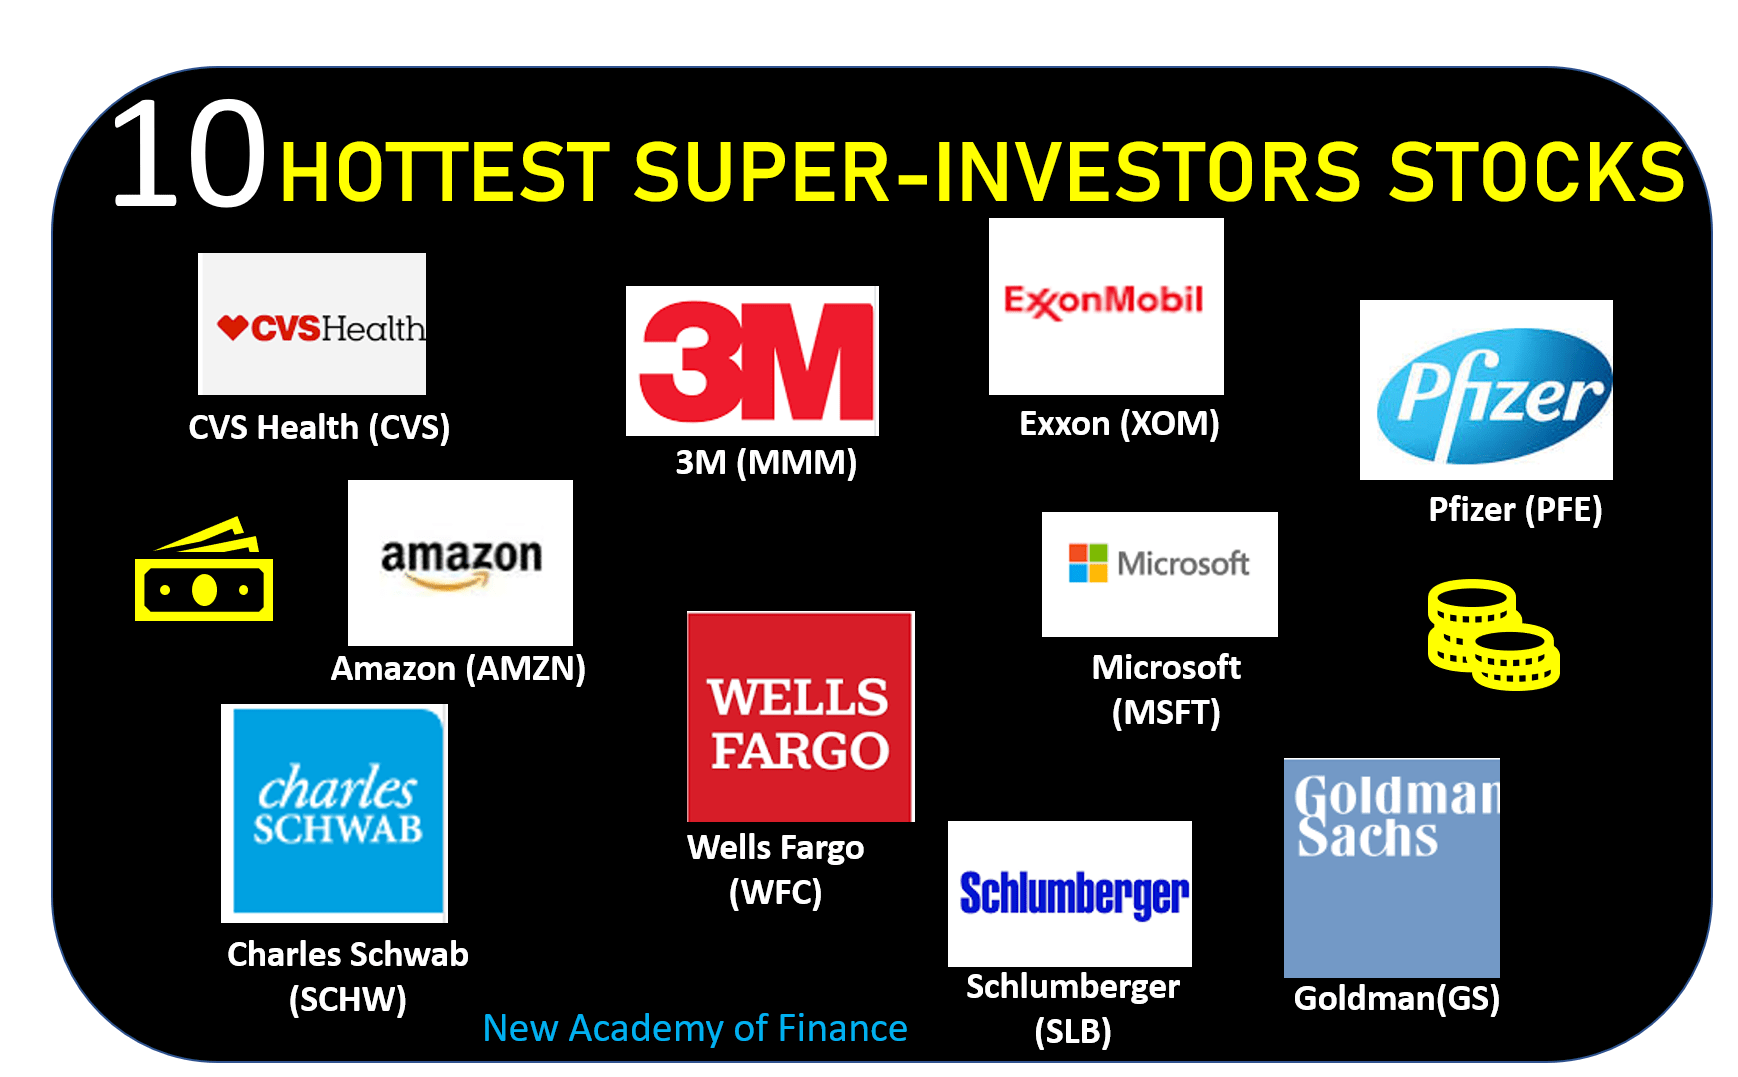 Top 10 hottest stocks that super-investors are buying ...